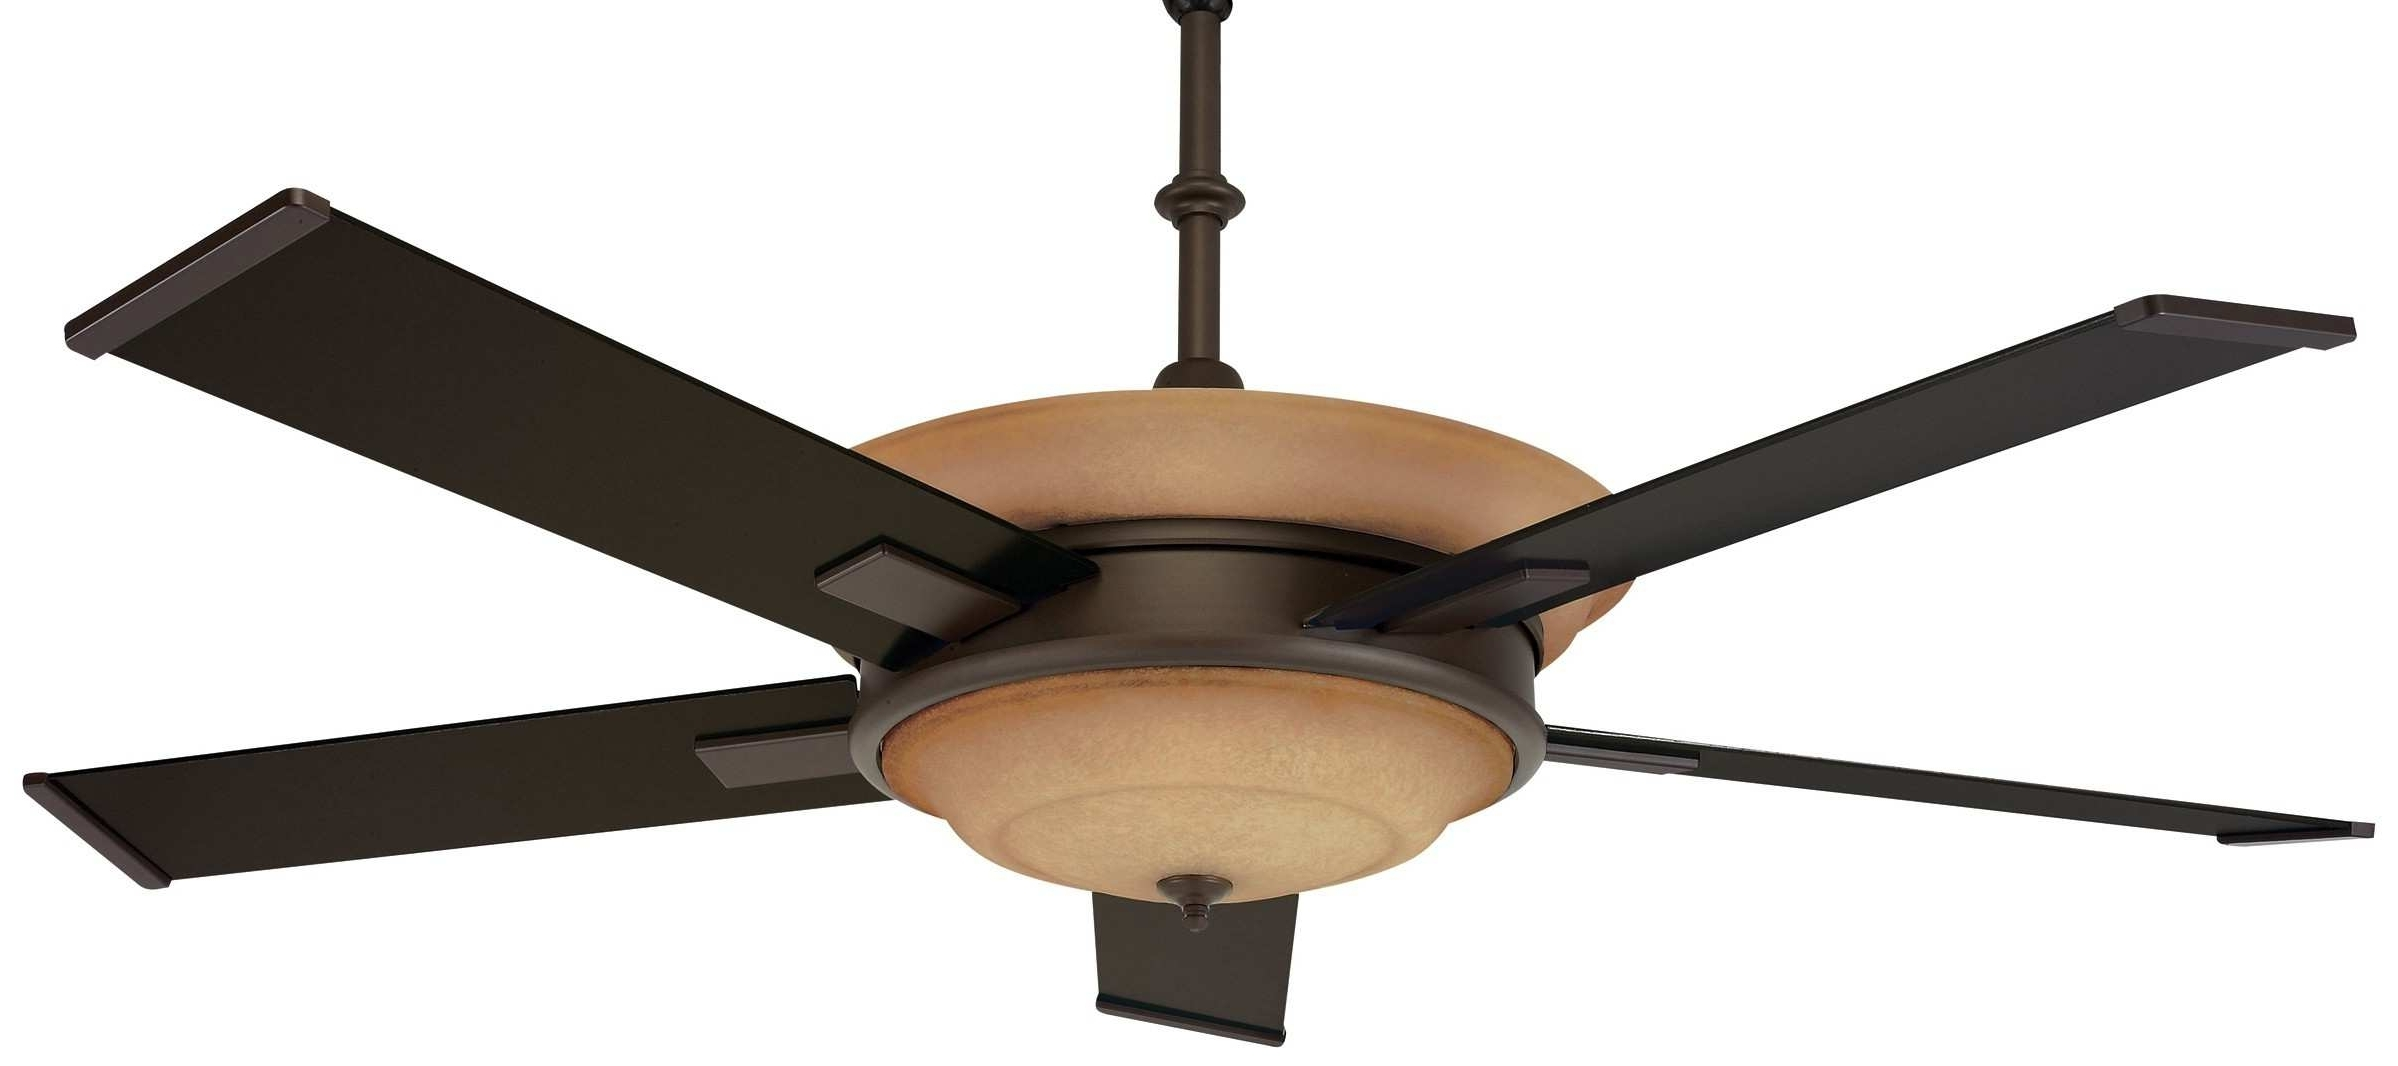 2018 Outdoor Ceiling Fans With Uplights Inside Ceiling Fan With Uplight And Downlight Beautiful Outdoor Concord (View 1 of 20)